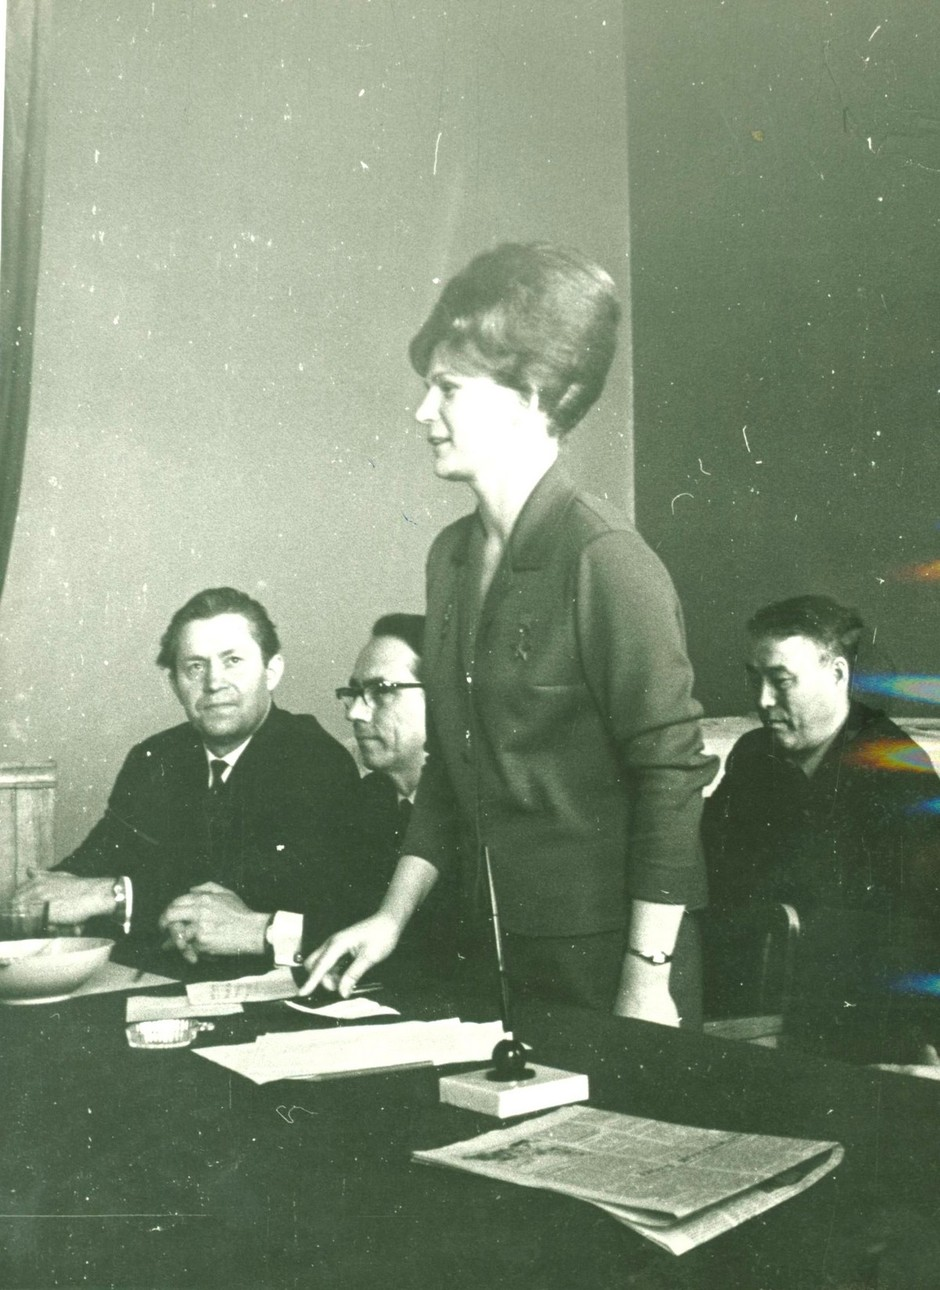 Pilot-cosmonaut V. V. Tereshkova at a meeting with journalists. 2nd from left: chairman of the board of the Union of Journalists of TASSR Sh. Khammatov, 1st from right – editor-in-chief of the magazine Kazan Utlary Z. Nuri, Kazan. March, 1966